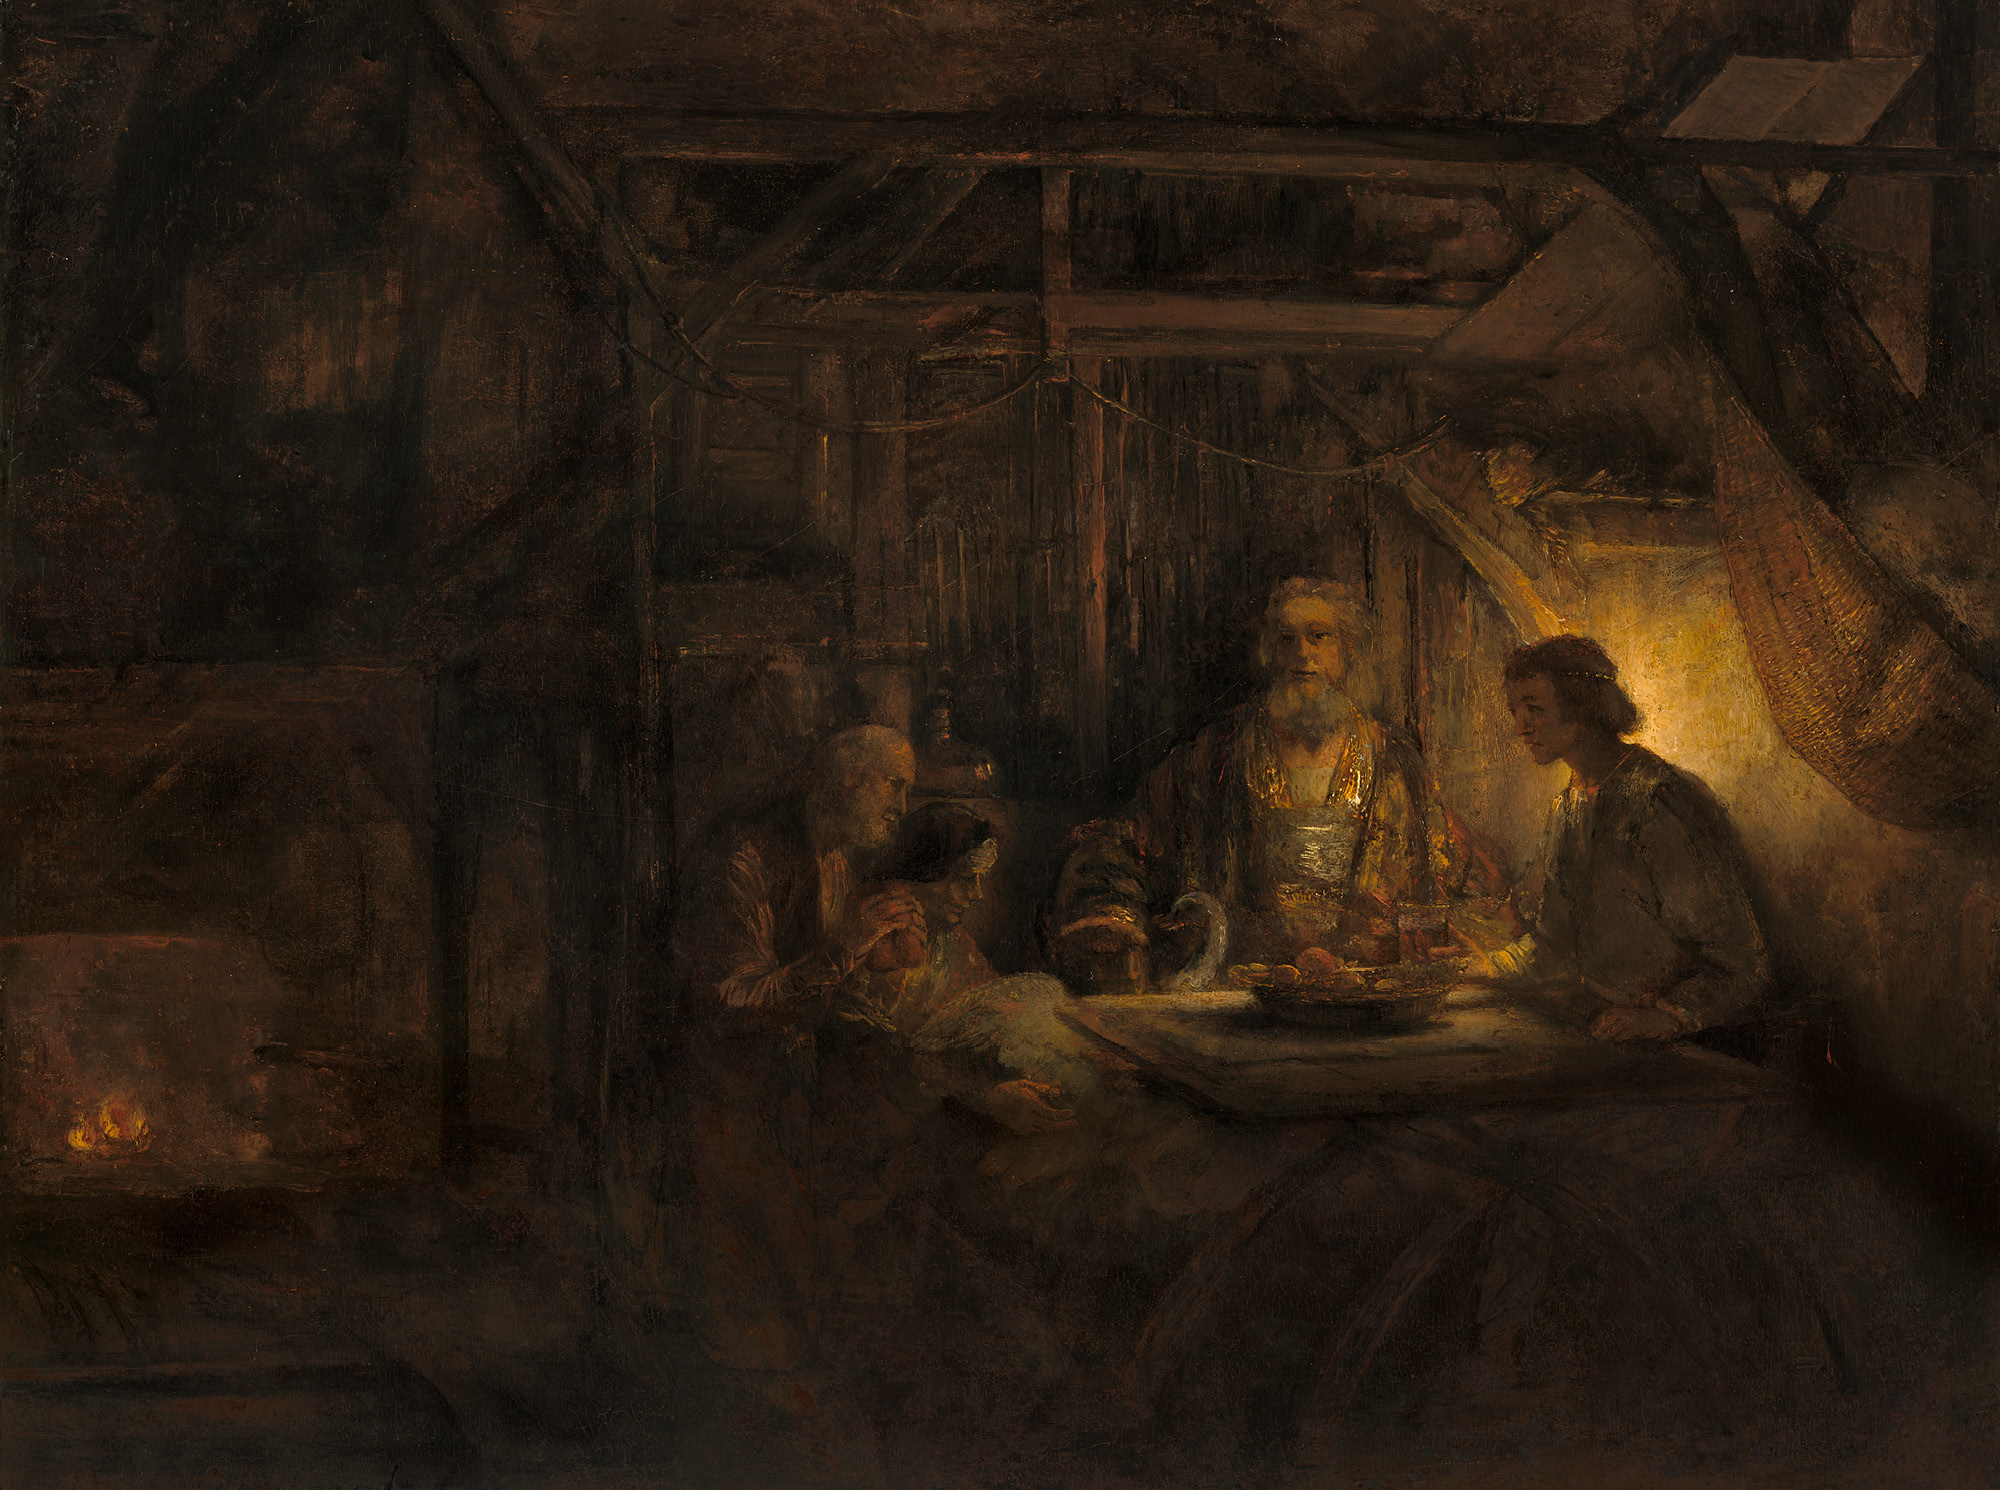 Rembrandt van Rijn, Philemon and Baucis, 1658, oil on panel transferred to panel, National Gallery of Art, Washington